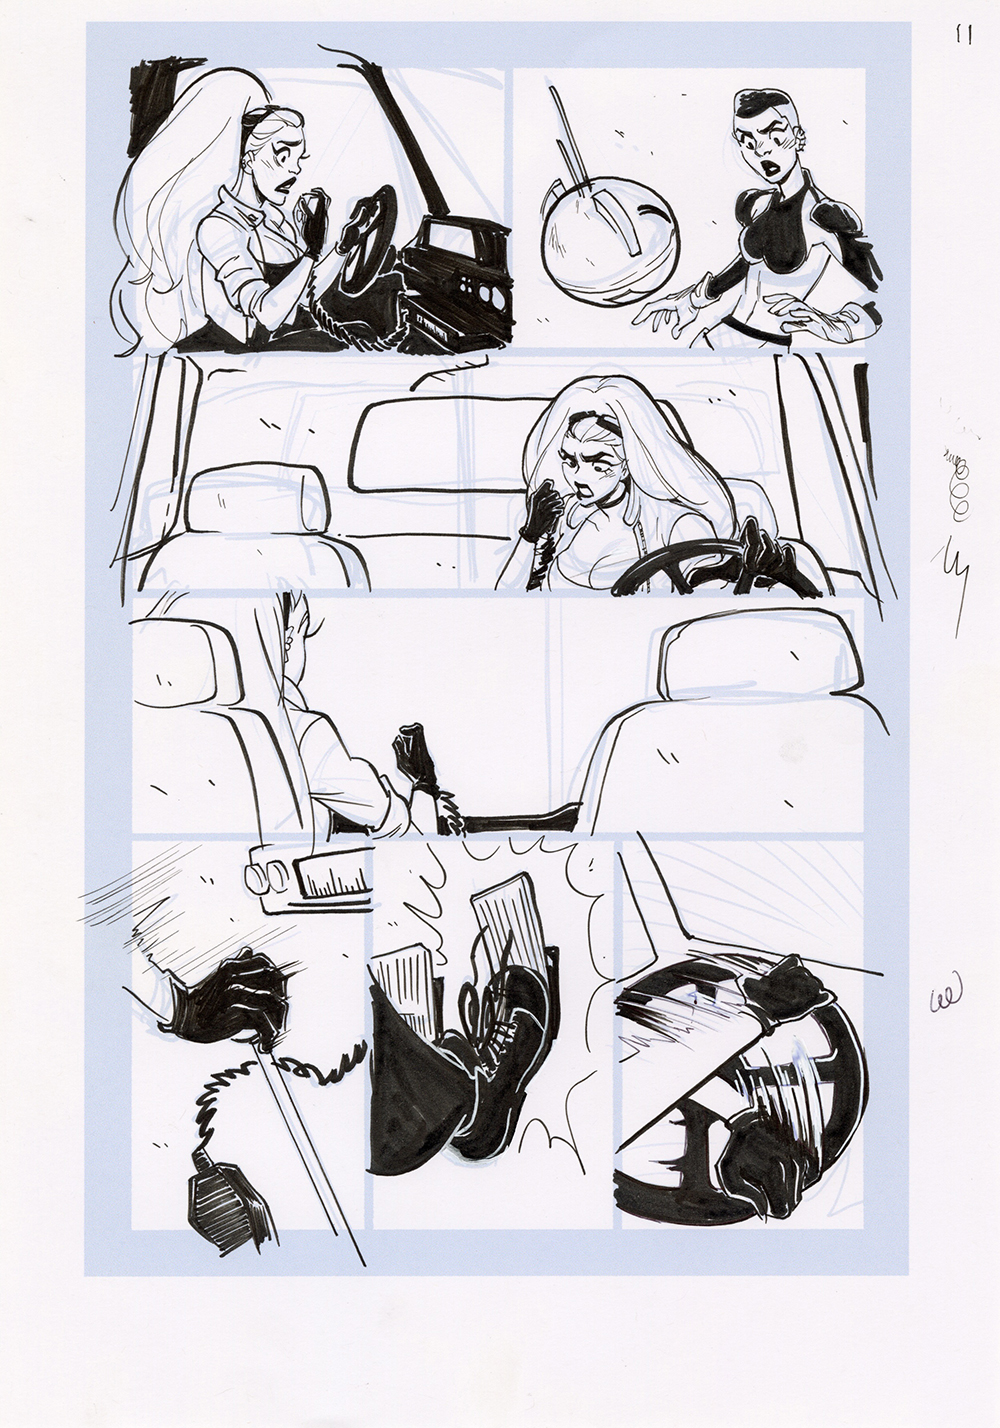 Motor Crush Vol. 2 Original Comic Page #11 (UNFRAMED), Babs Tarr